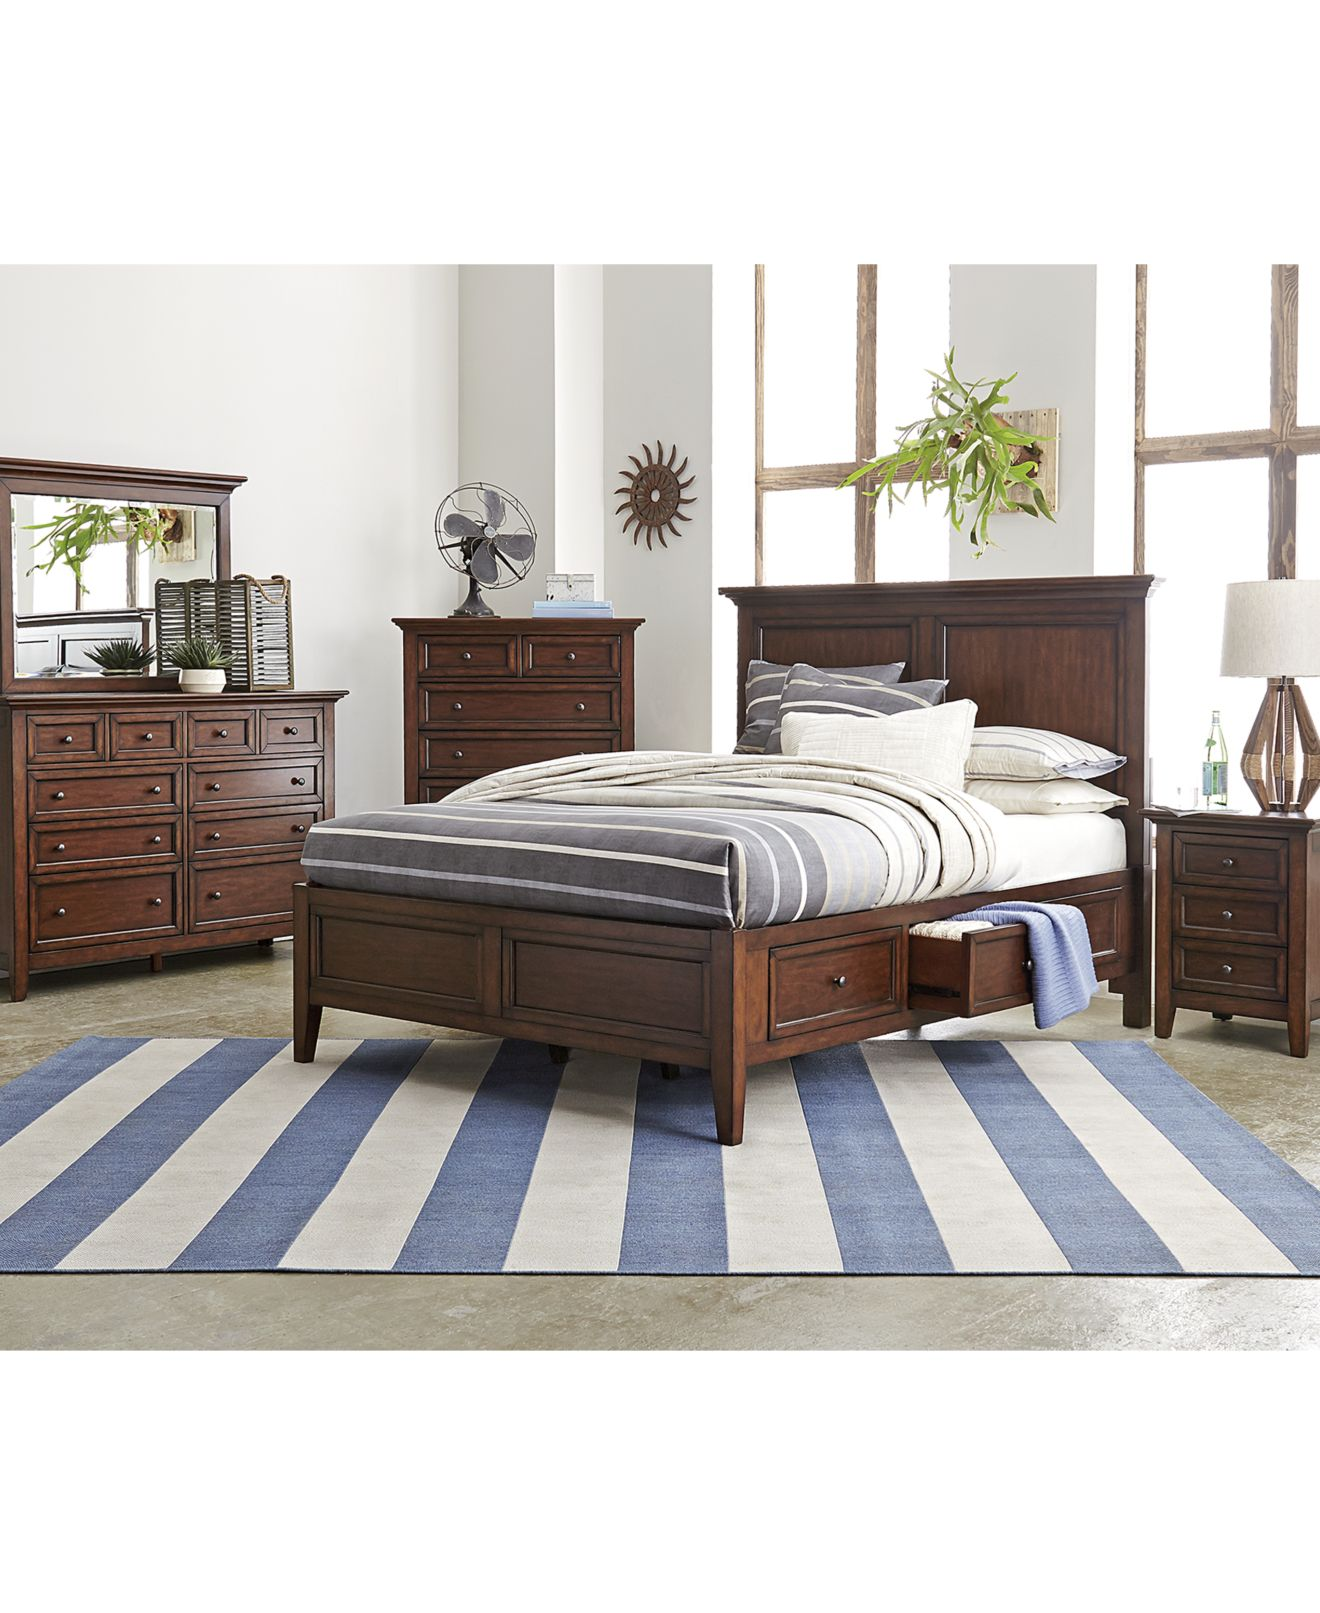 Inspirational Macys Bedroom Sets